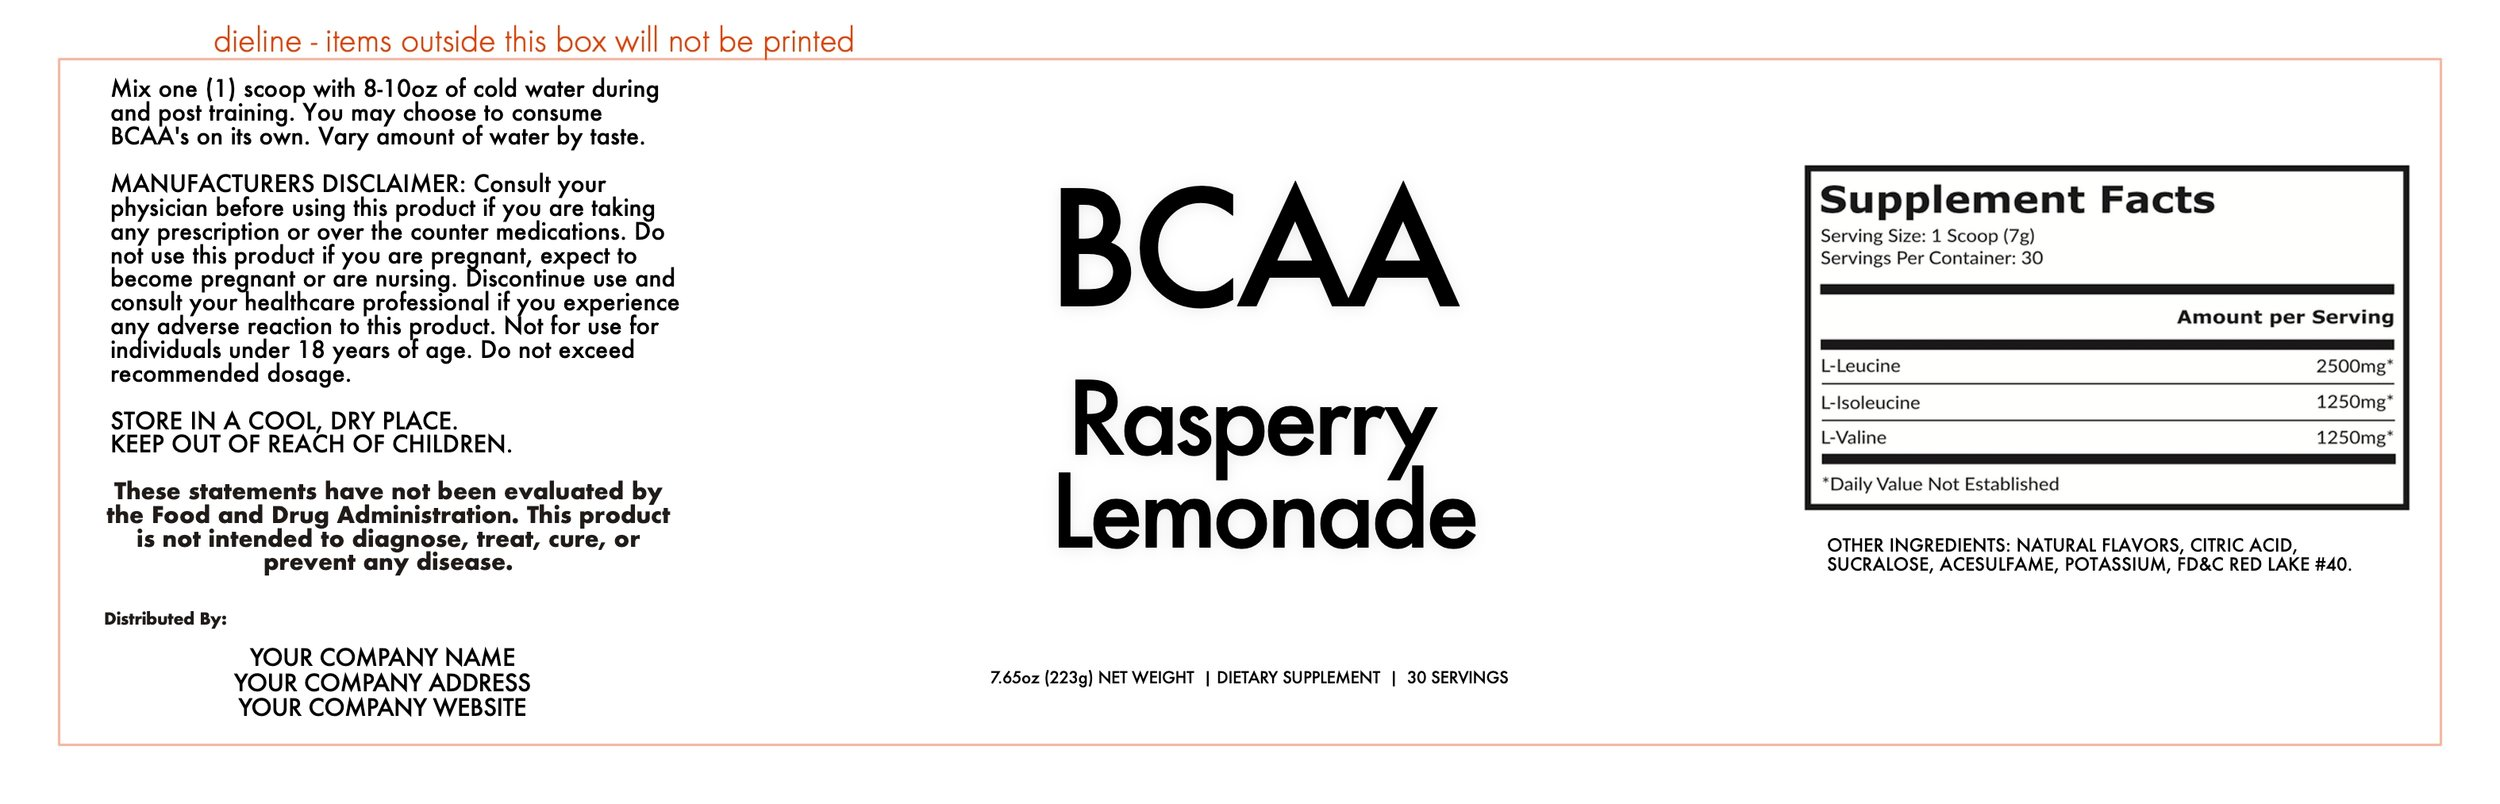 IMN BCAA Raspberry Lemonade 10x2.875.jpg